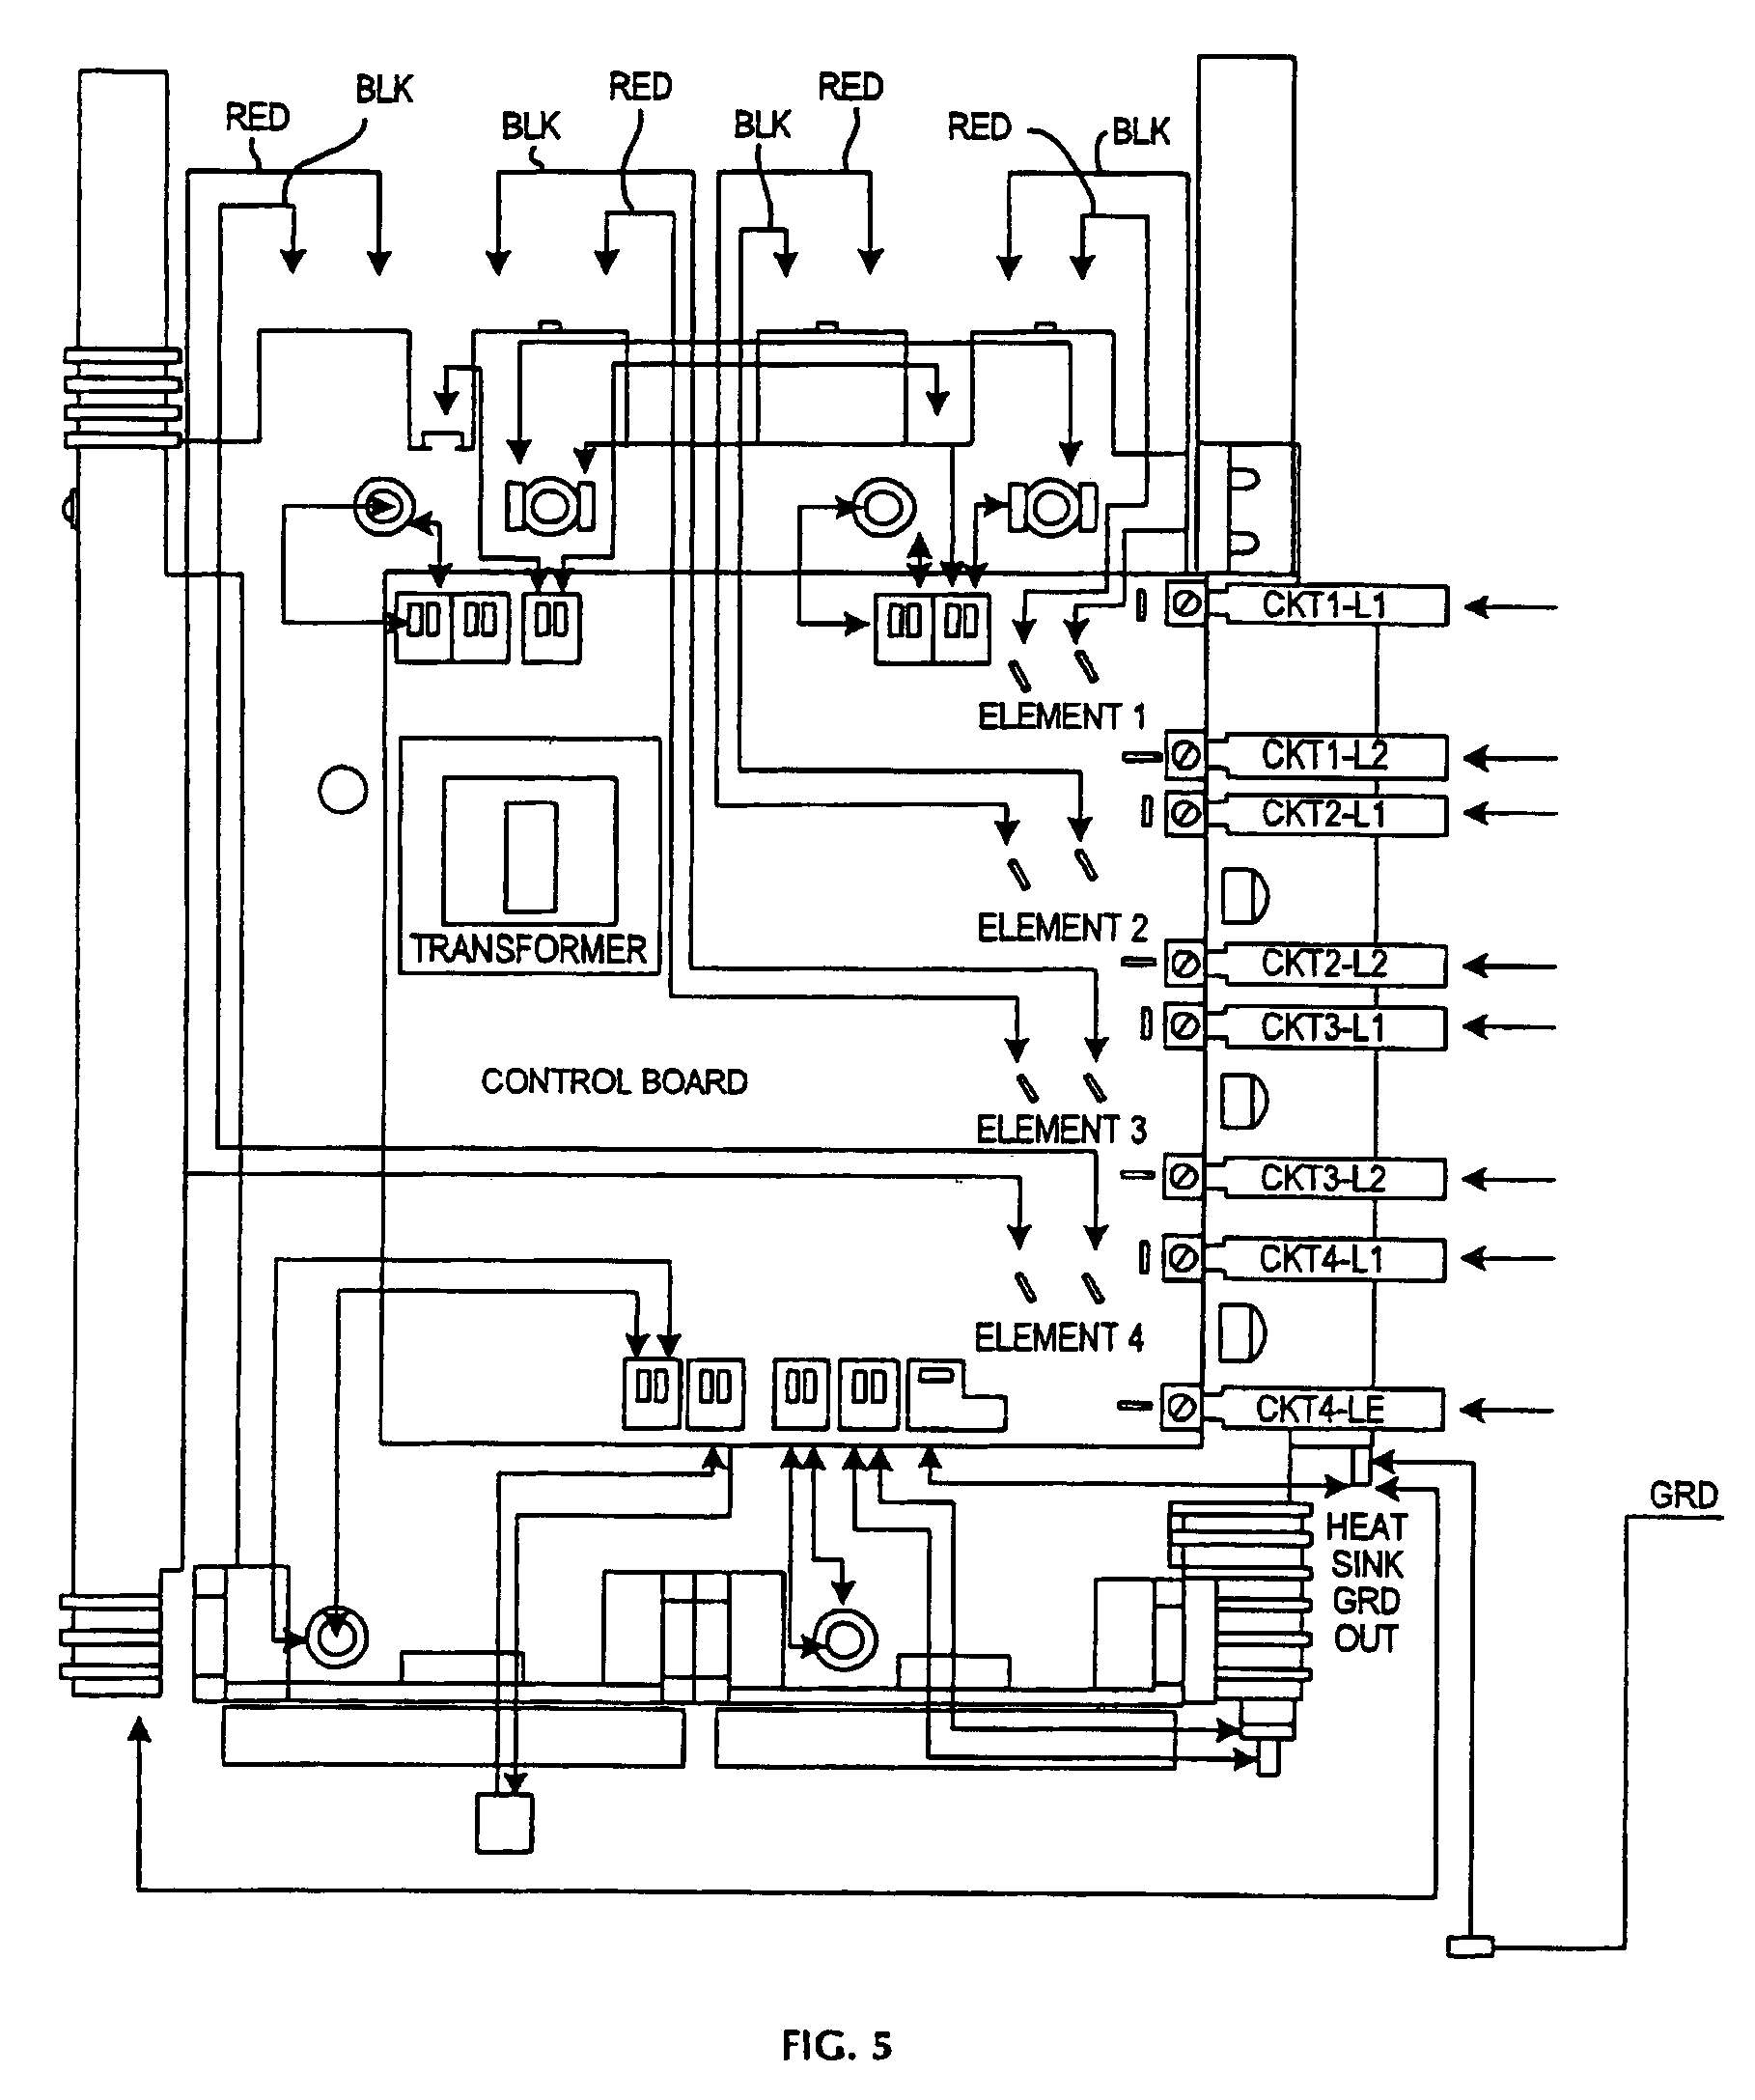 [HK_2054] Hot Air Furnace Wiring Diagram Free Diagram